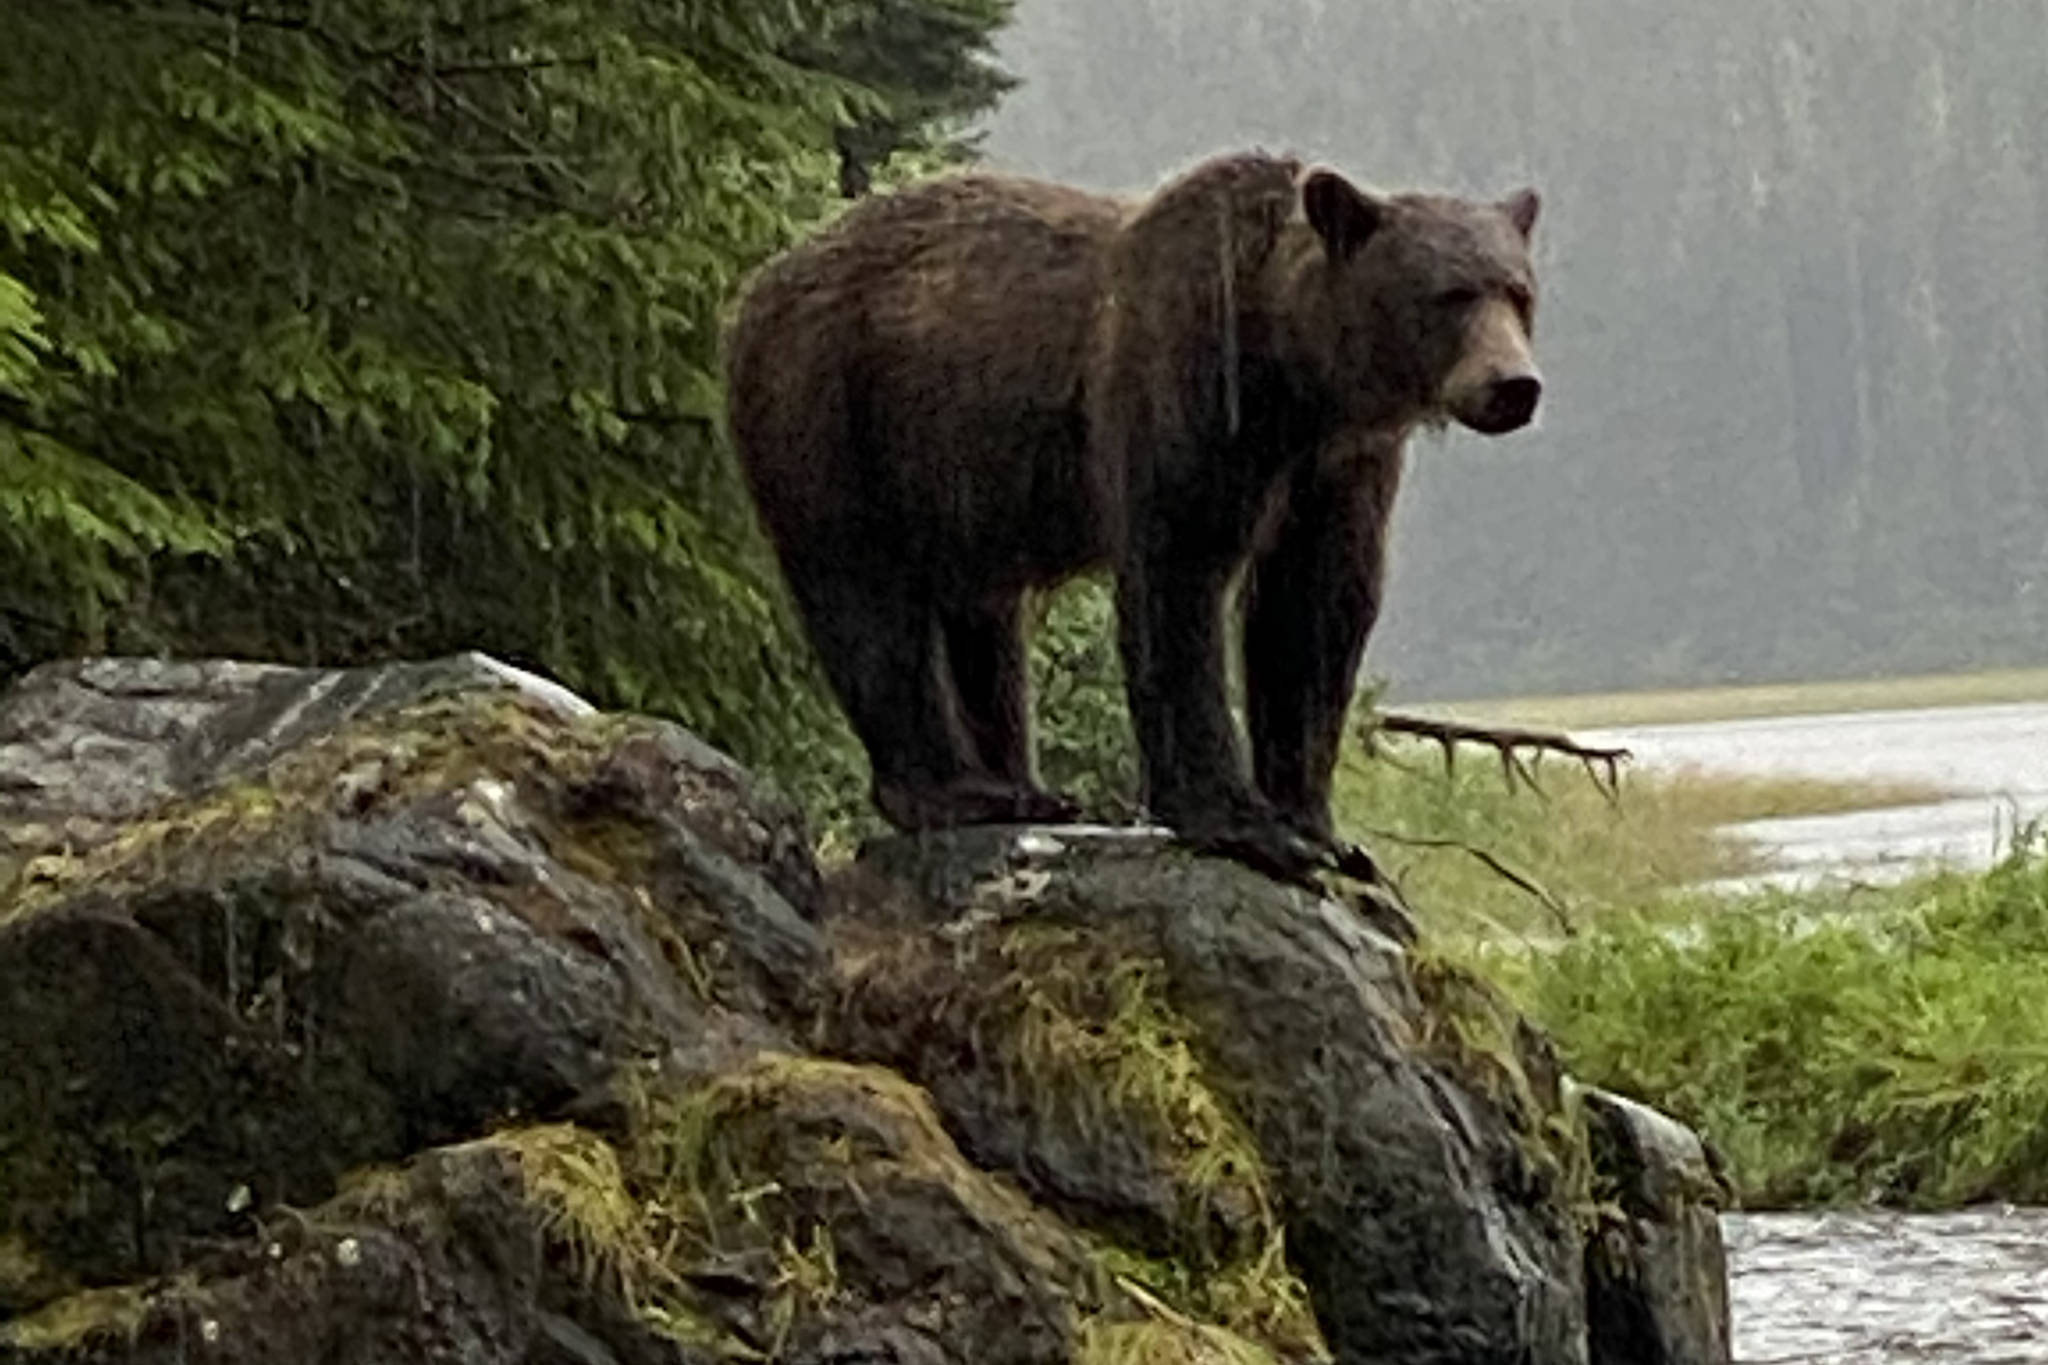 A brown bear stands at Sweetheart Creek on Aug. 9, 2020. (Courtesy Photo / Skippy Wilsonová)